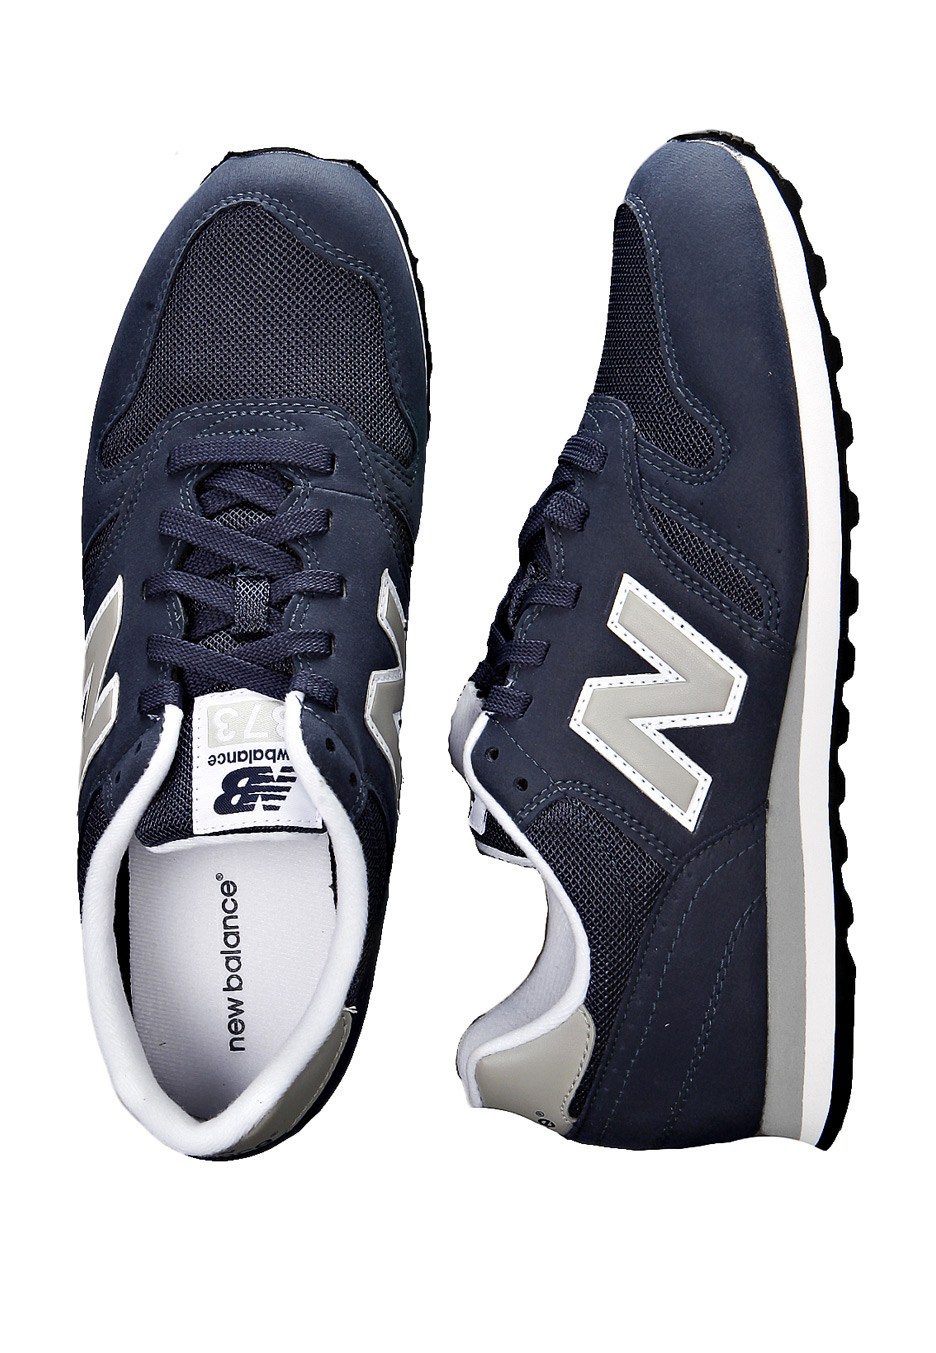 New Balance - M373NG Navy/Grey - Shoes - Streetwear Online Shop - Impericon.com Worldwide